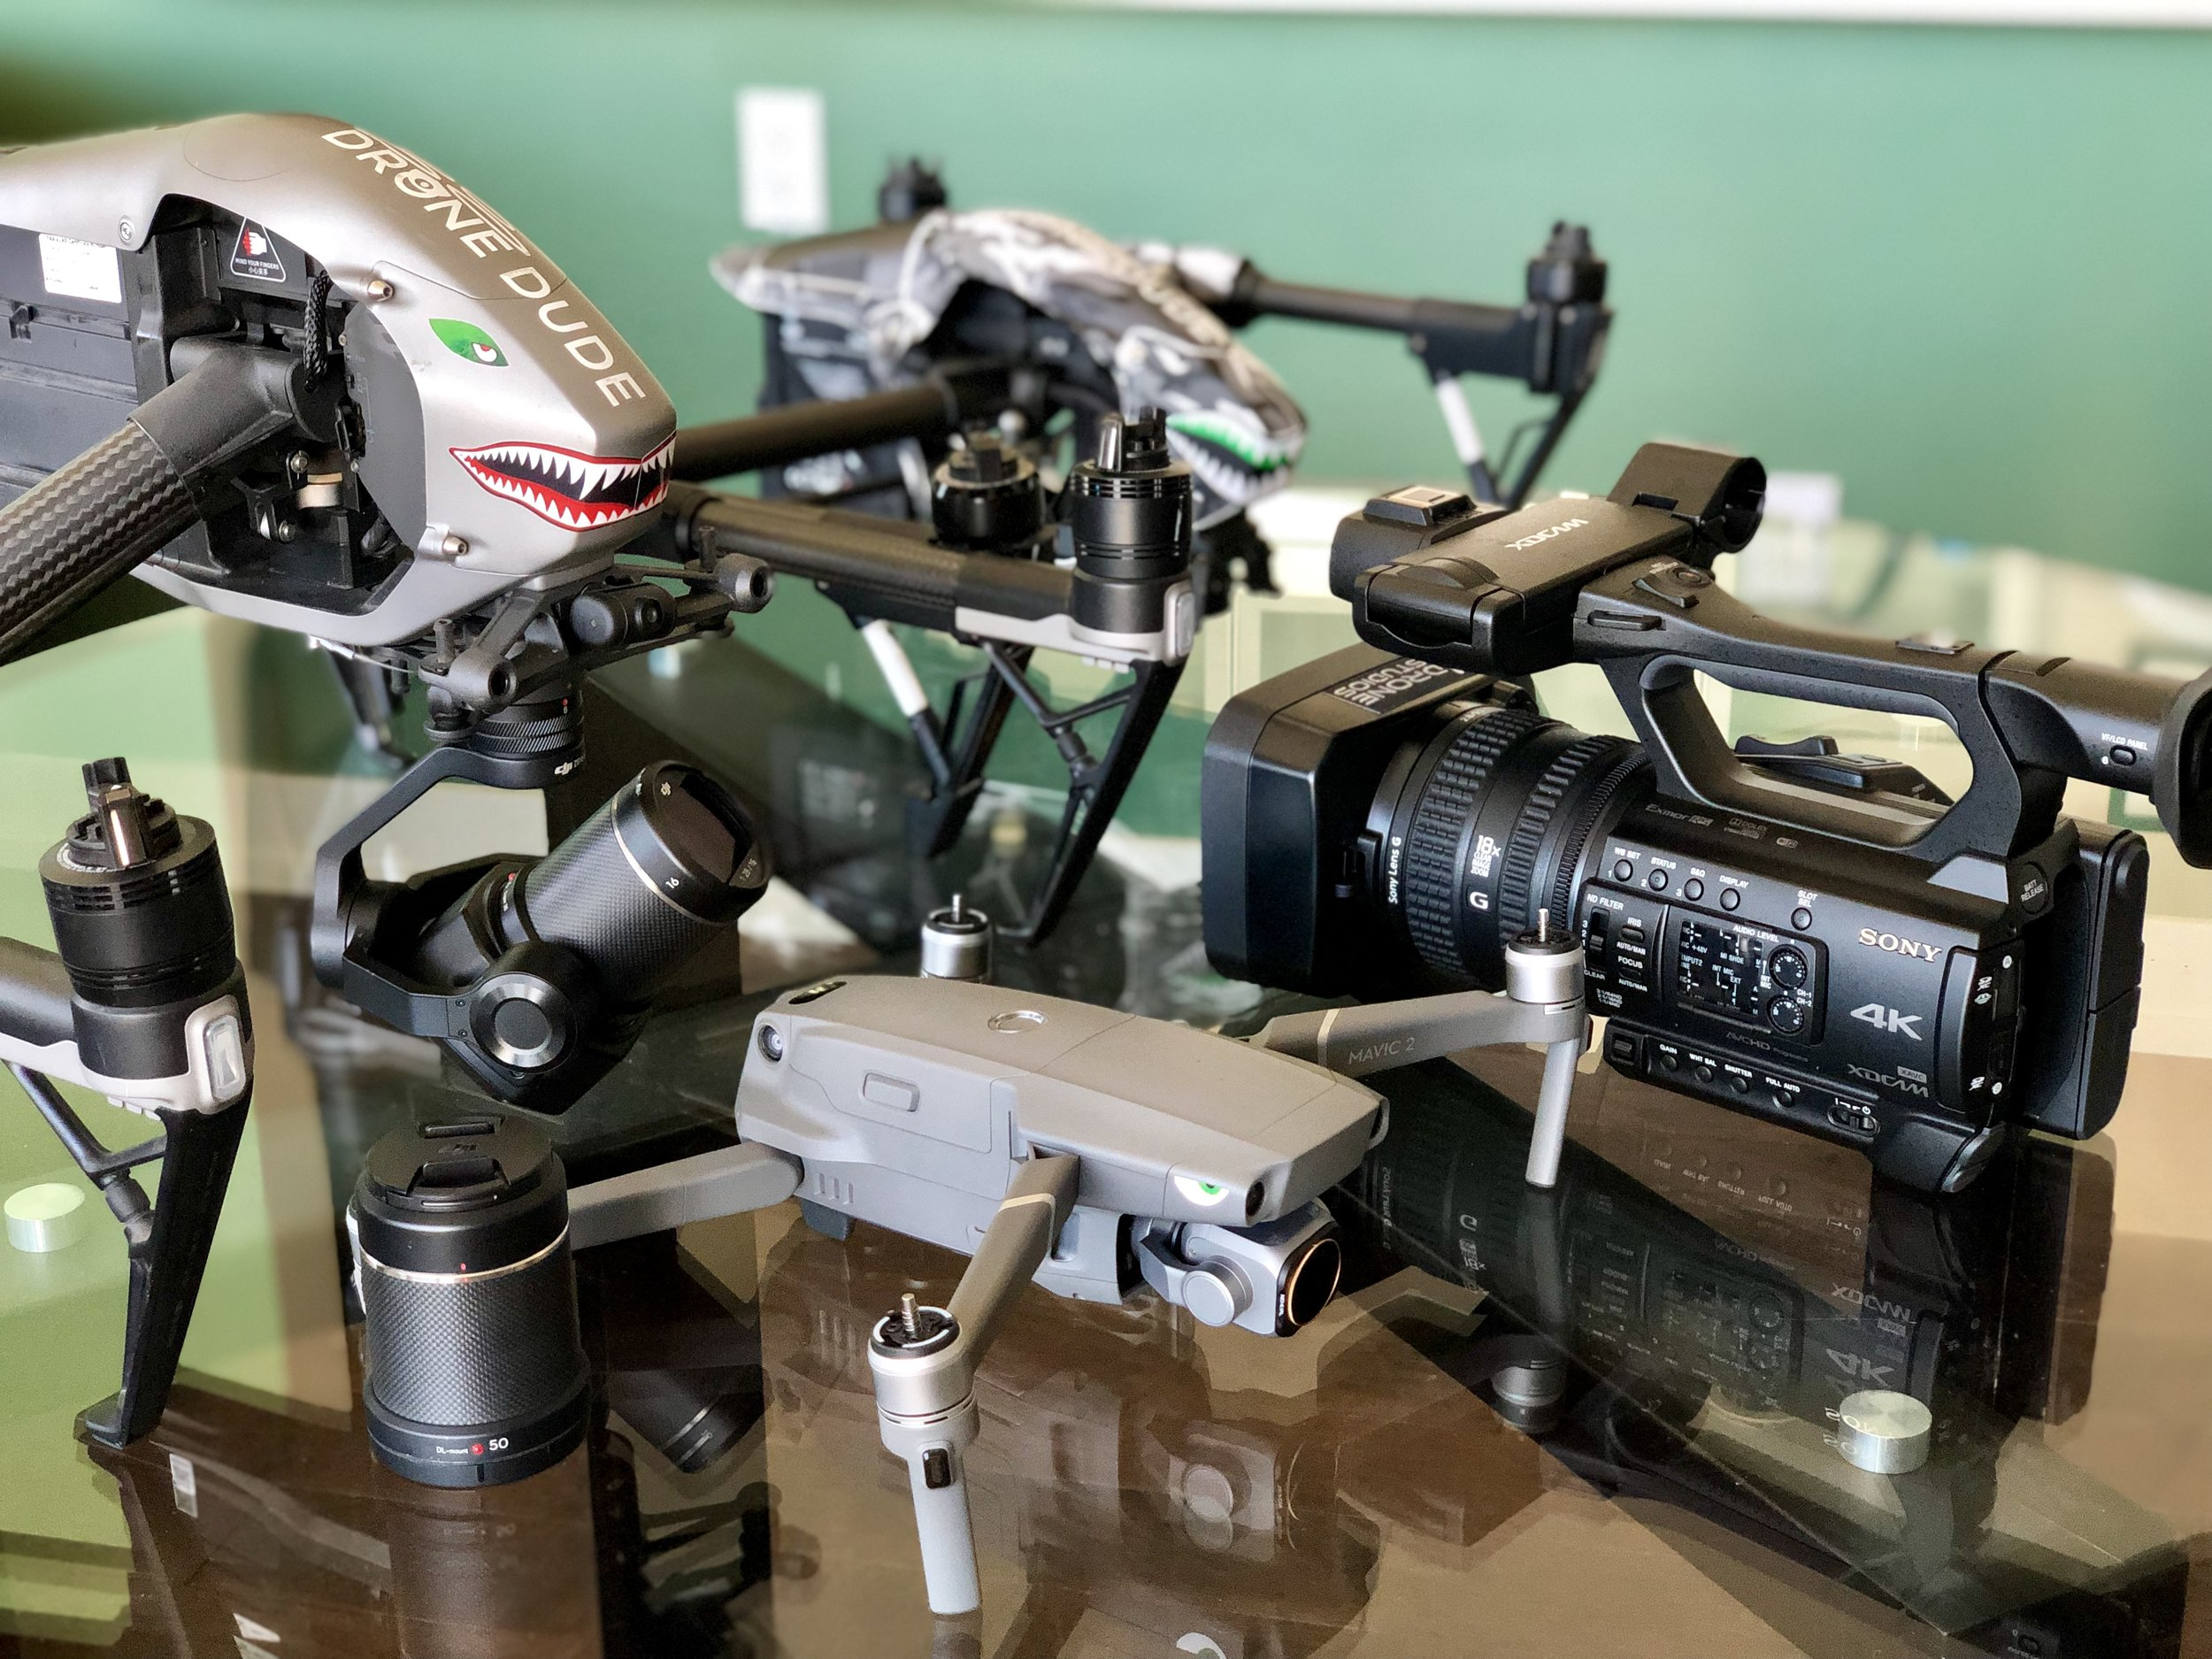 Our In-house camera and drone equipment, however rentals are always an option